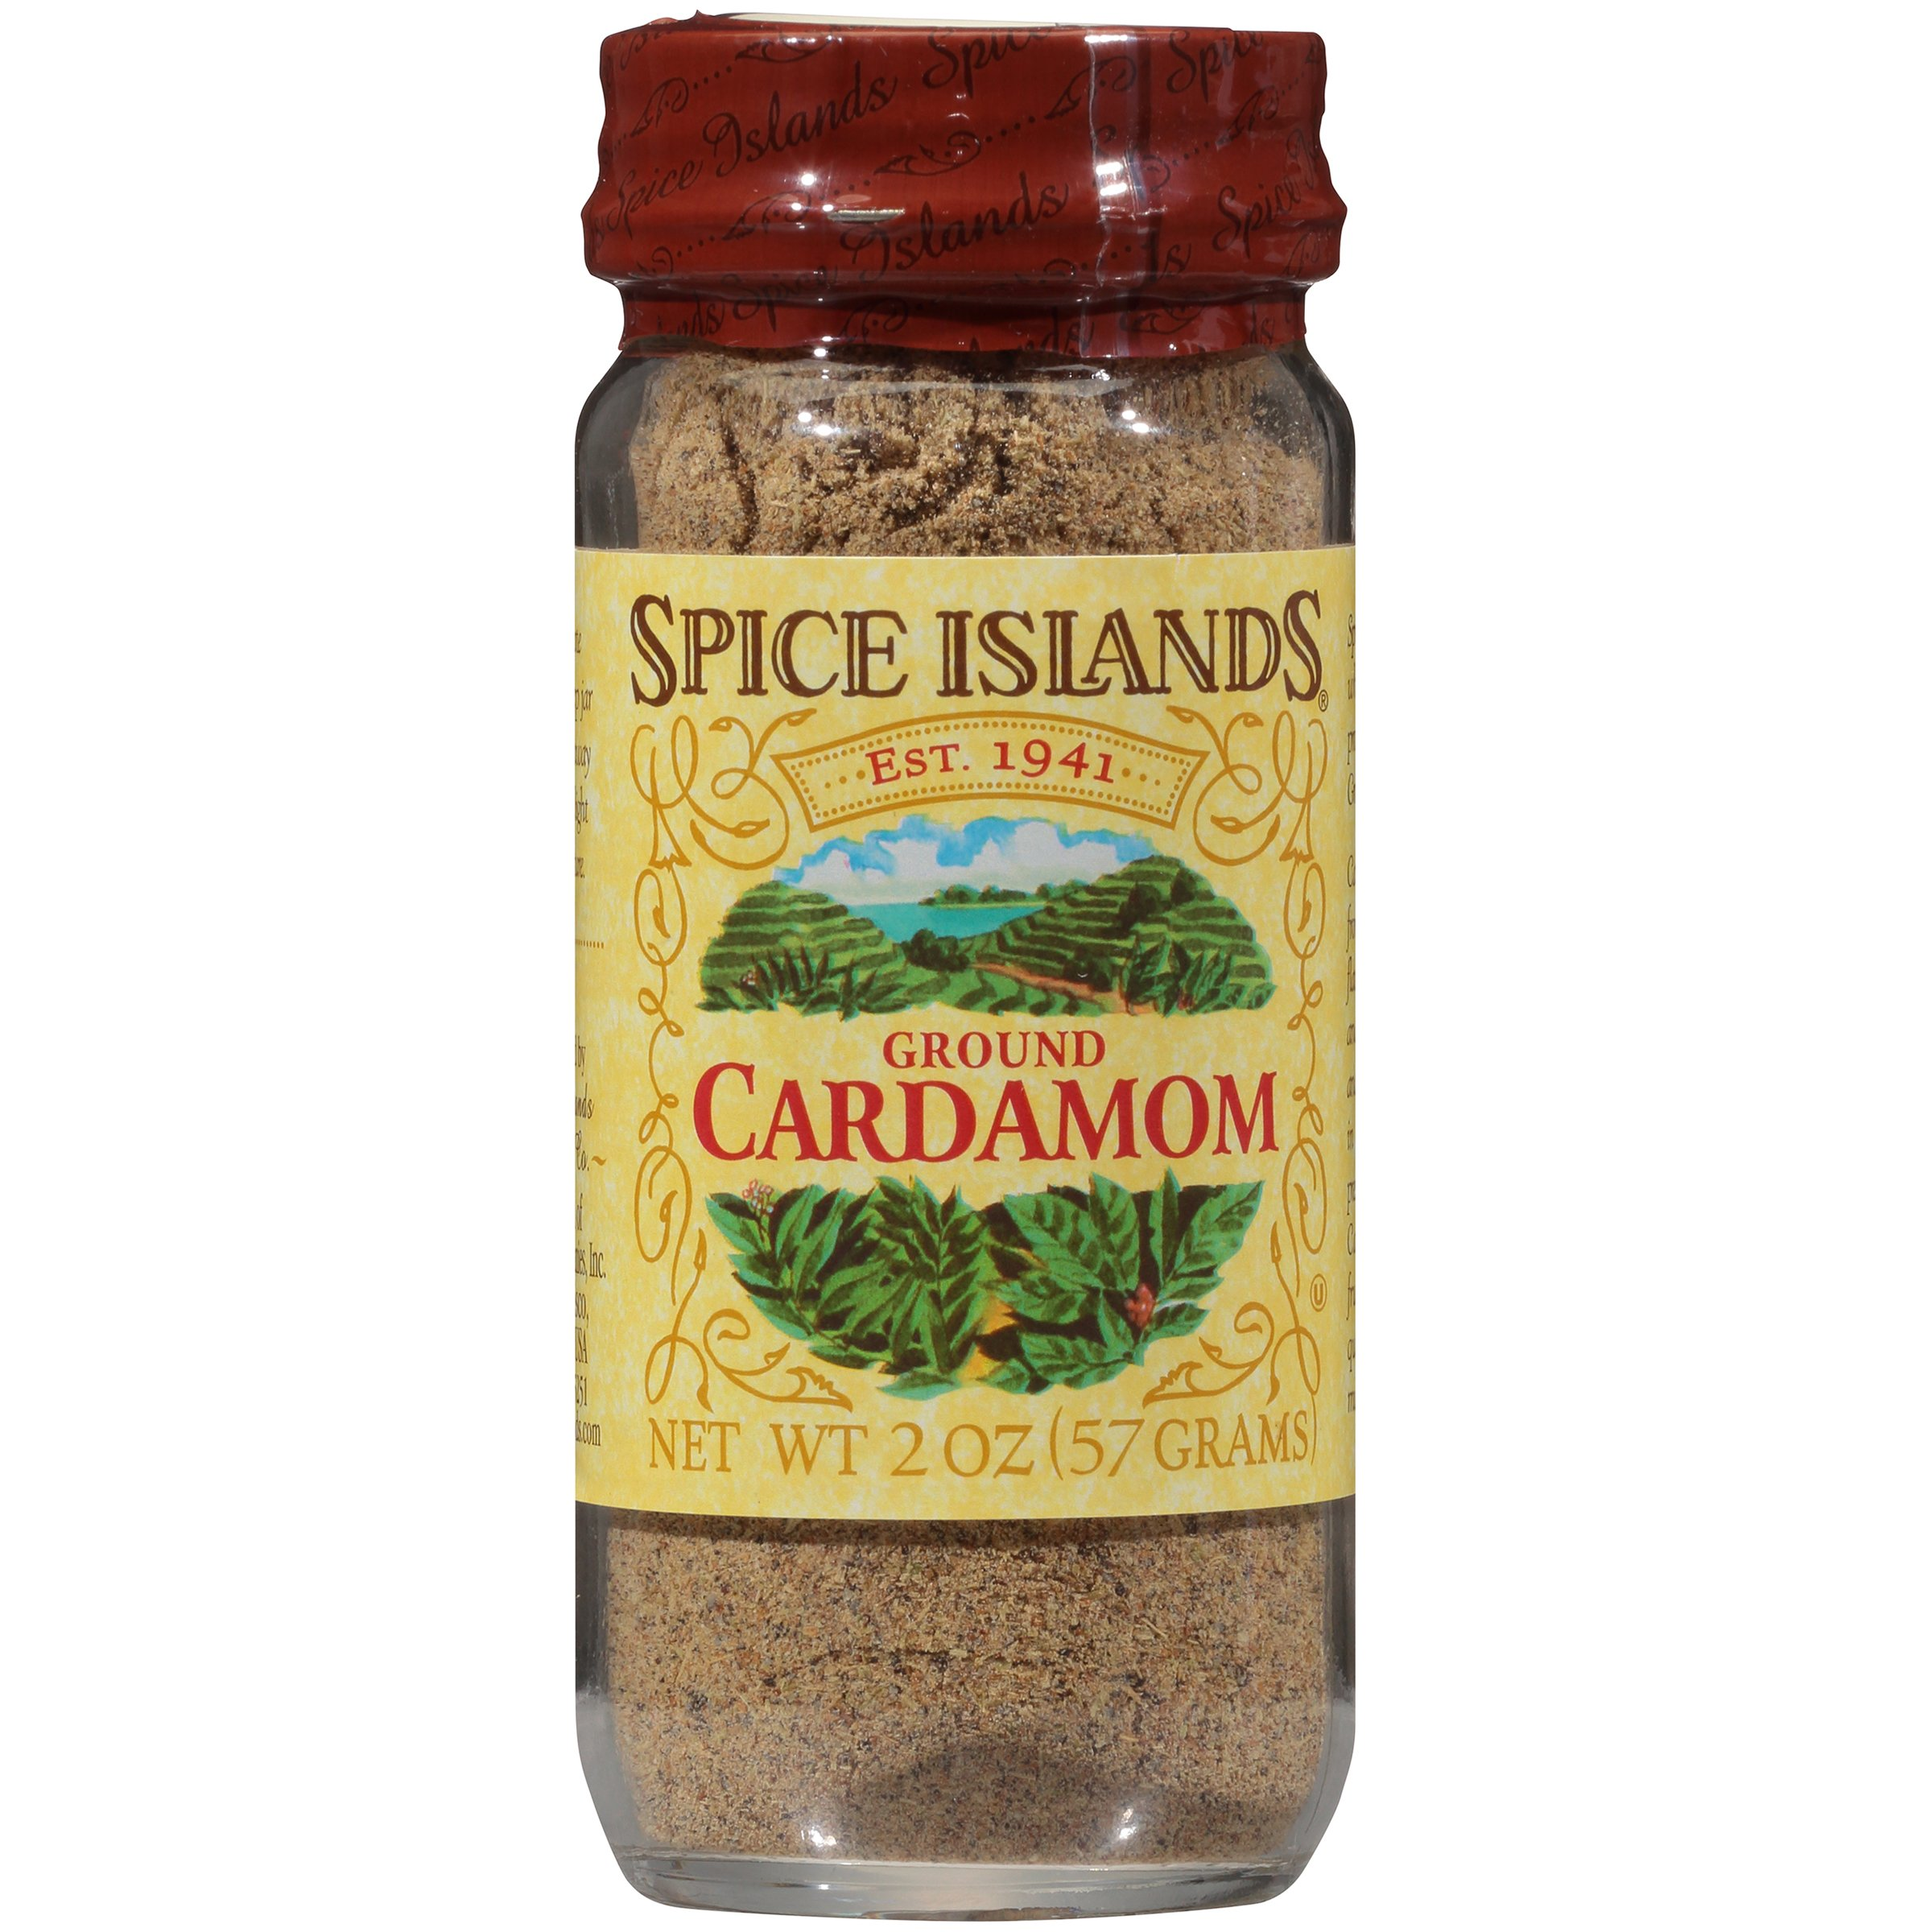 Spice Islands Ground Cardamom, 2 oz